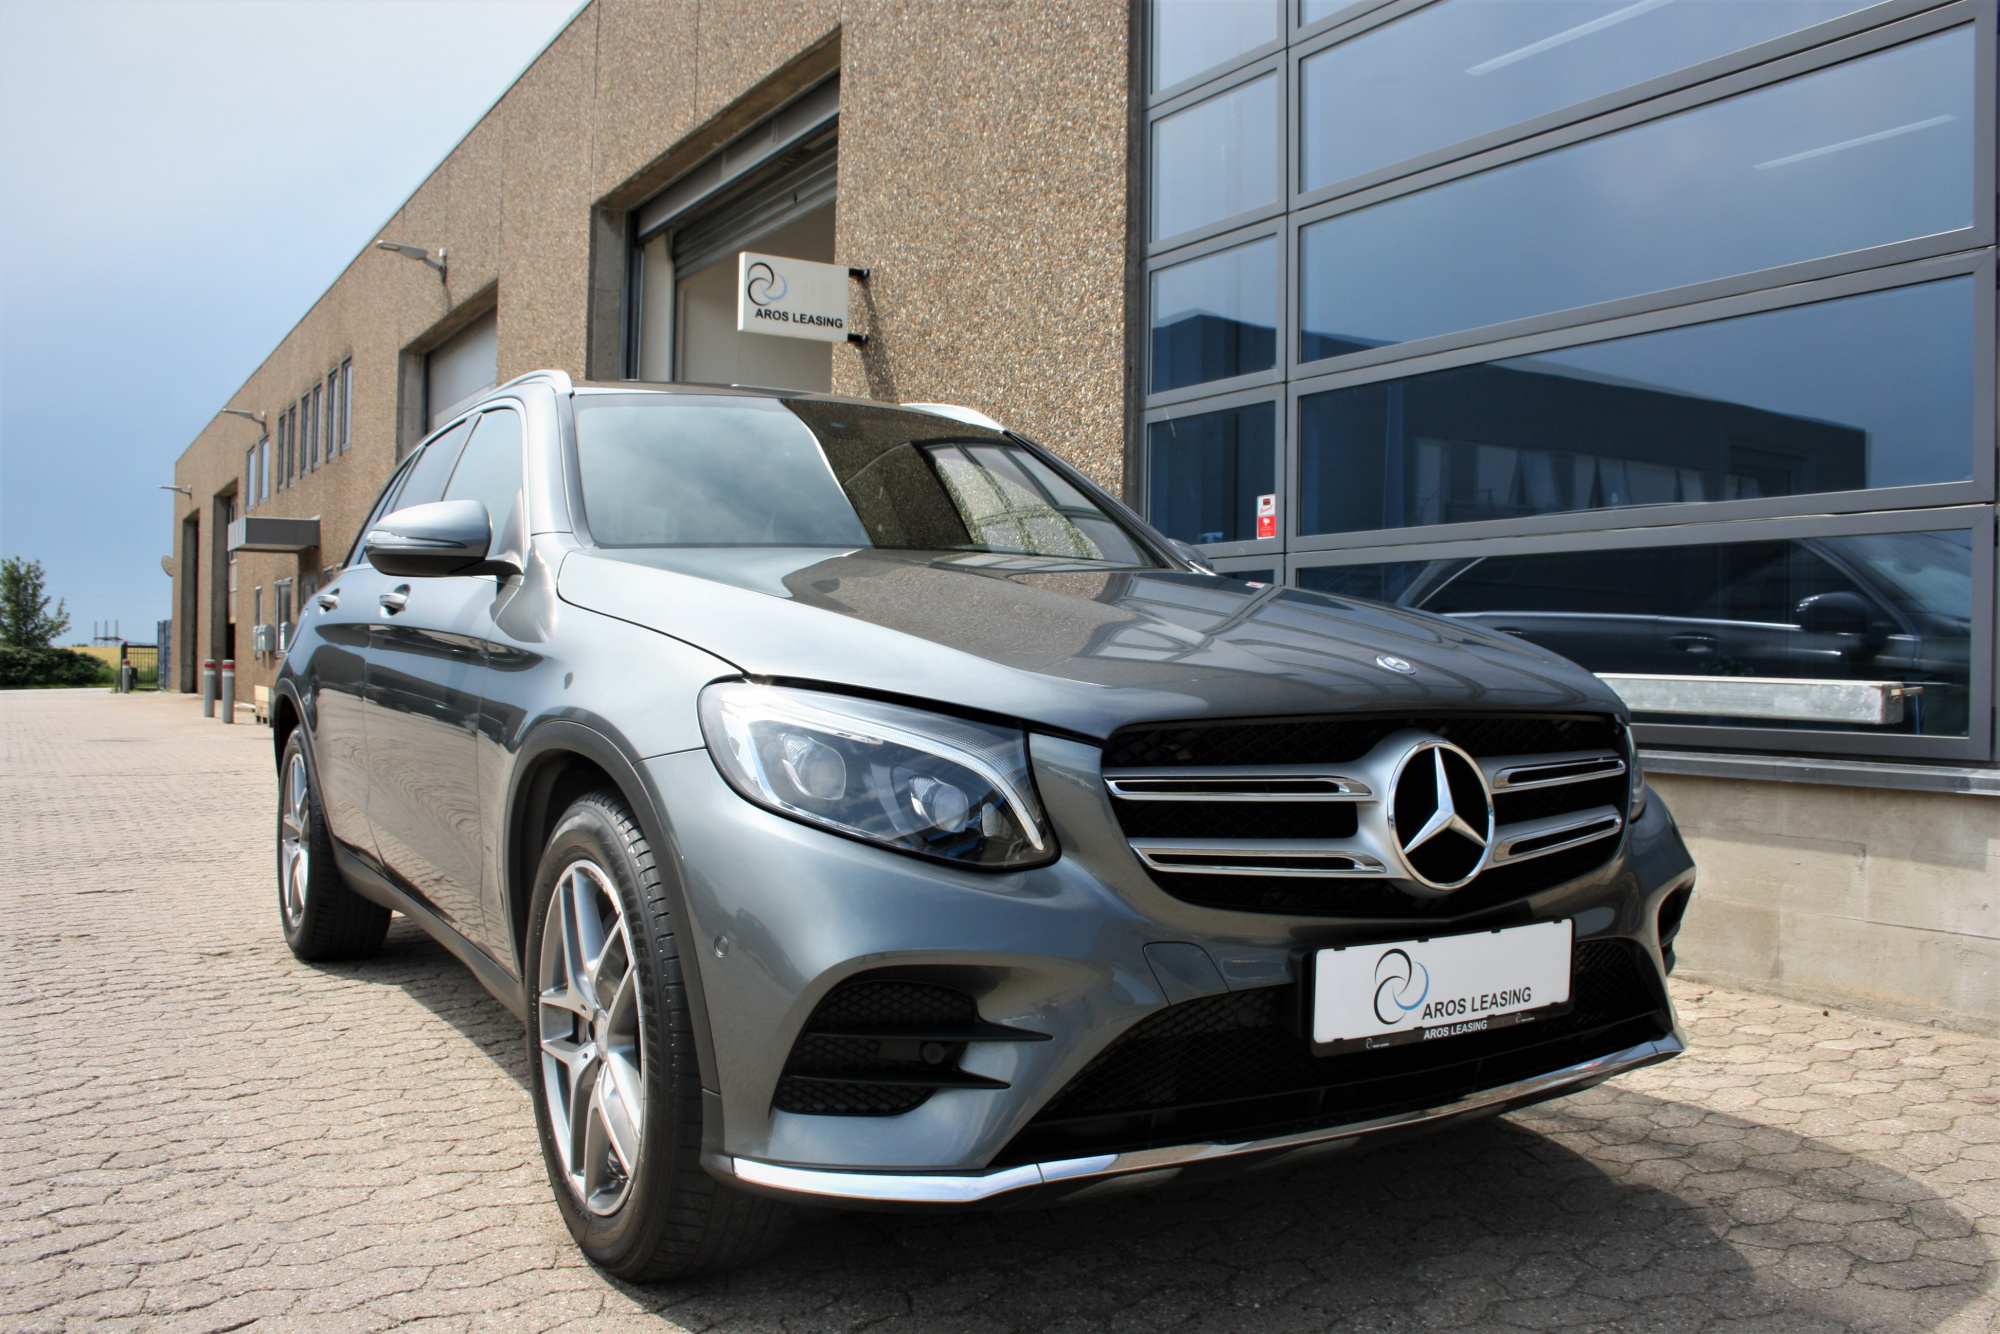 Mercedes-Benz GLC 220d Van